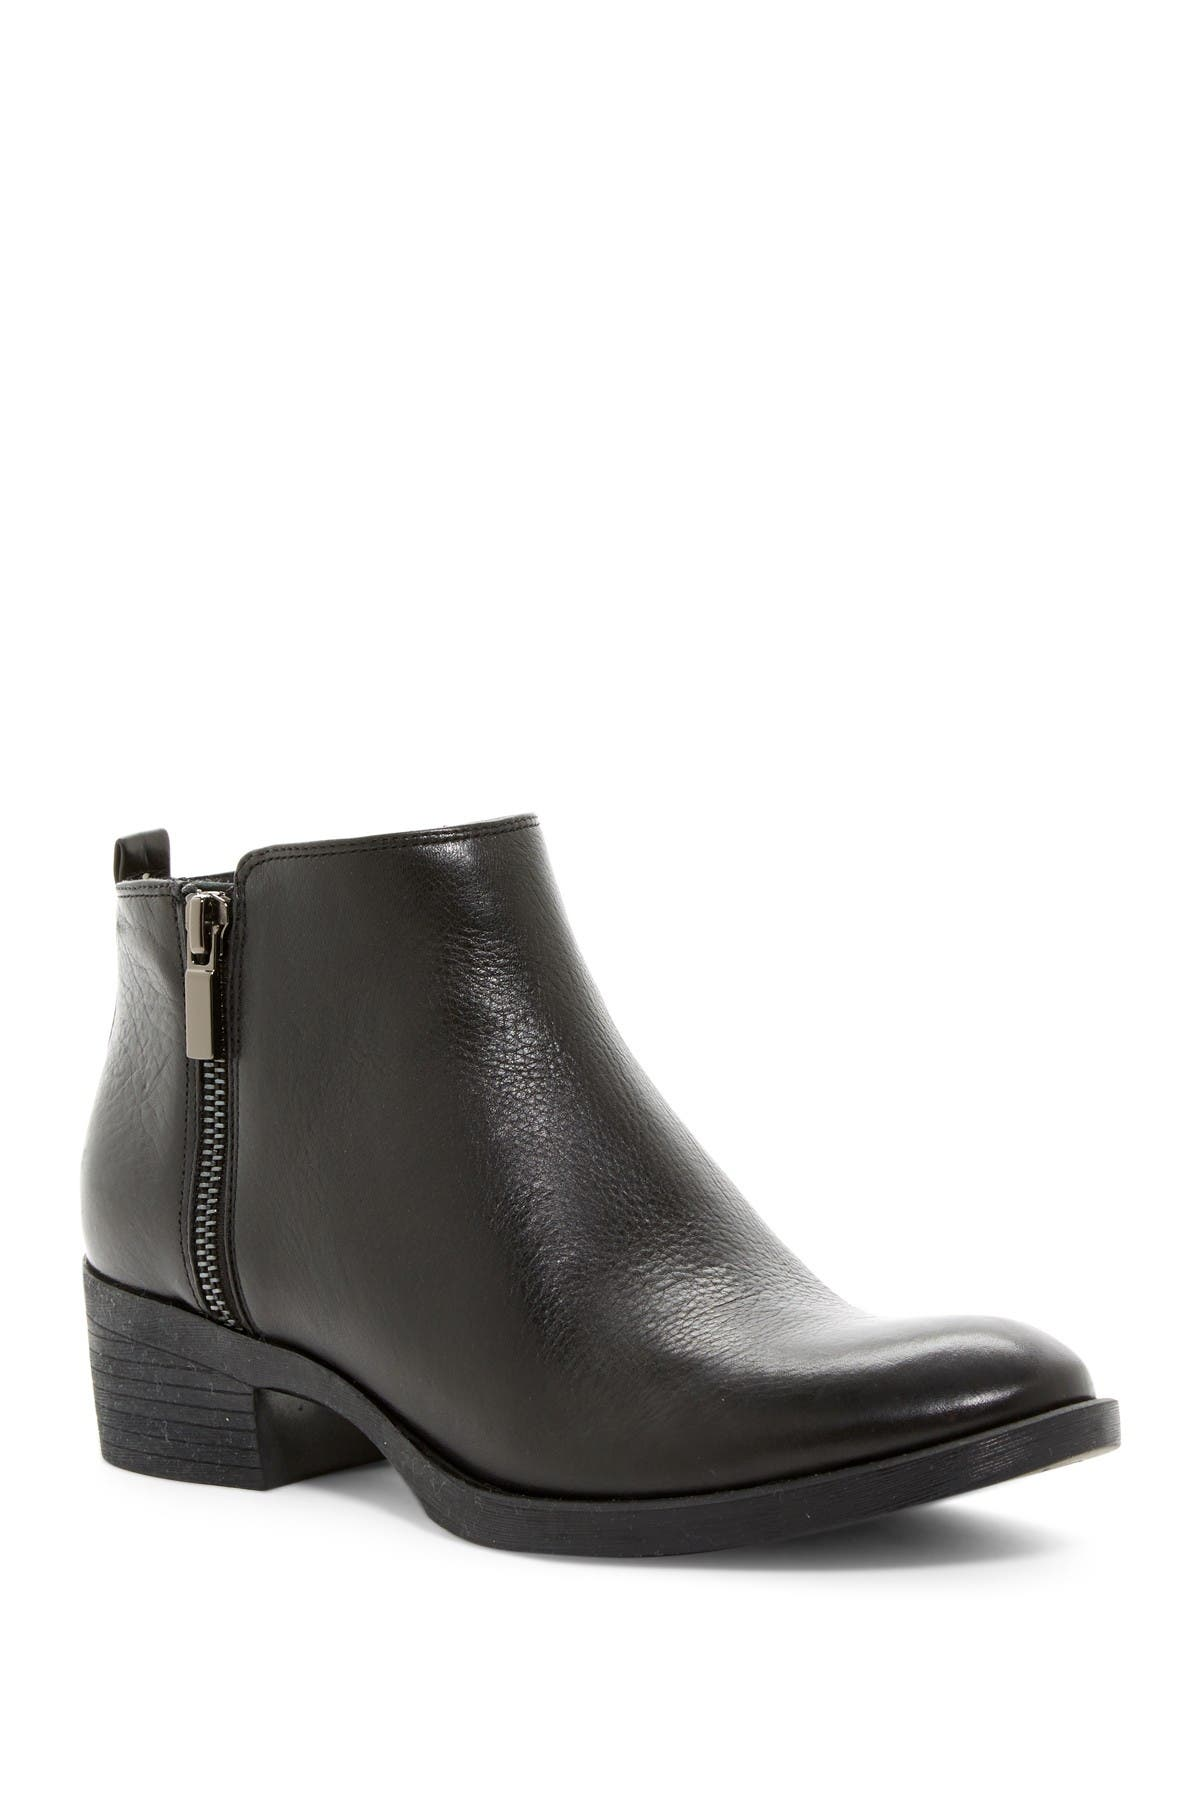 Image of Kenneth Cole New York Levon Bootie